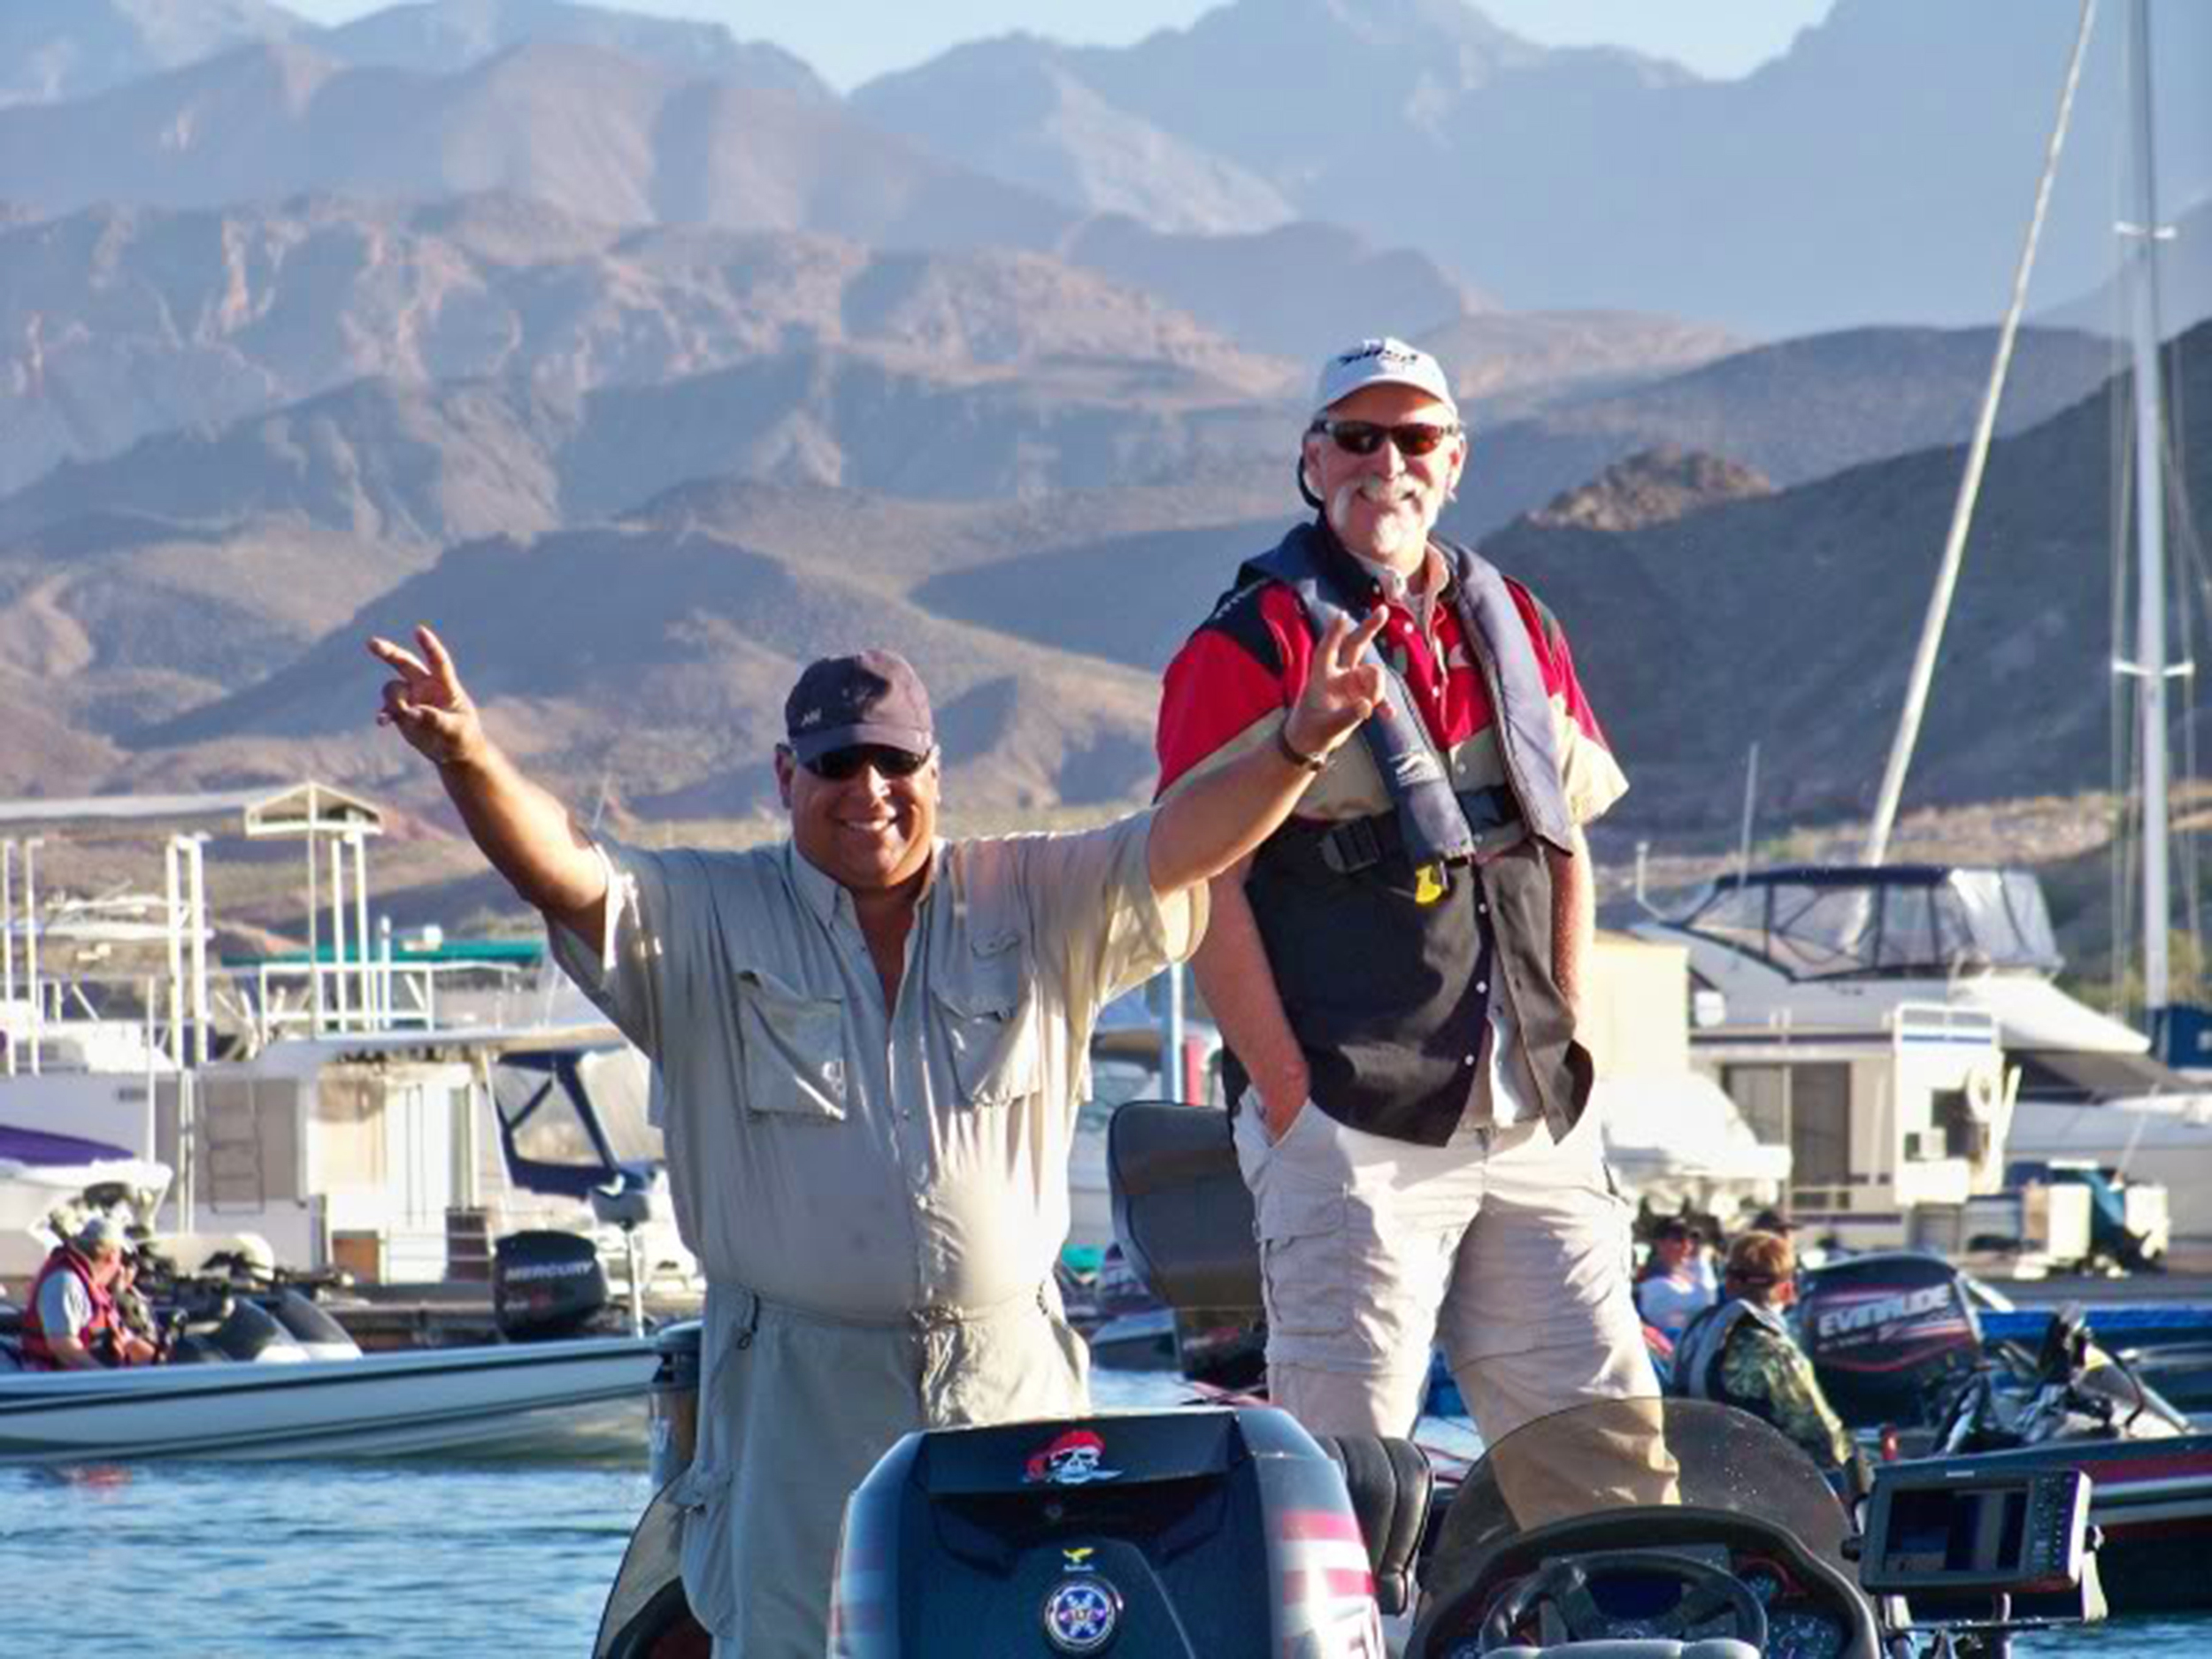 A winning smile and V for victory, Chris (closest to camera) doing what he does best at Lake Mead Nevada!